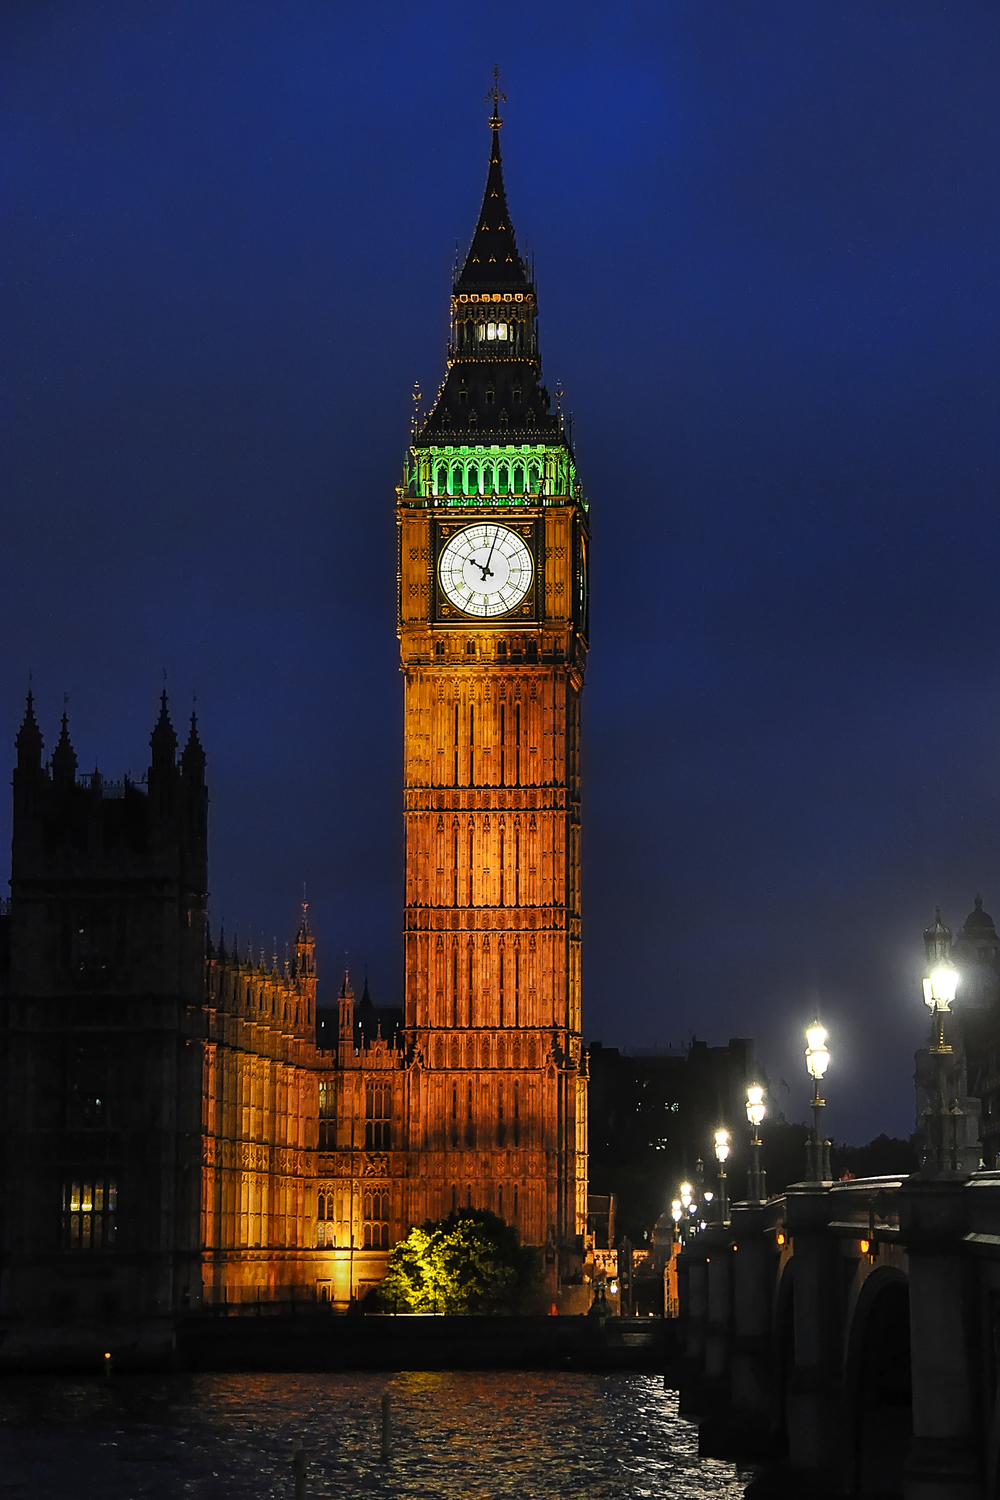 Timeless London - Big Ben (London, England)